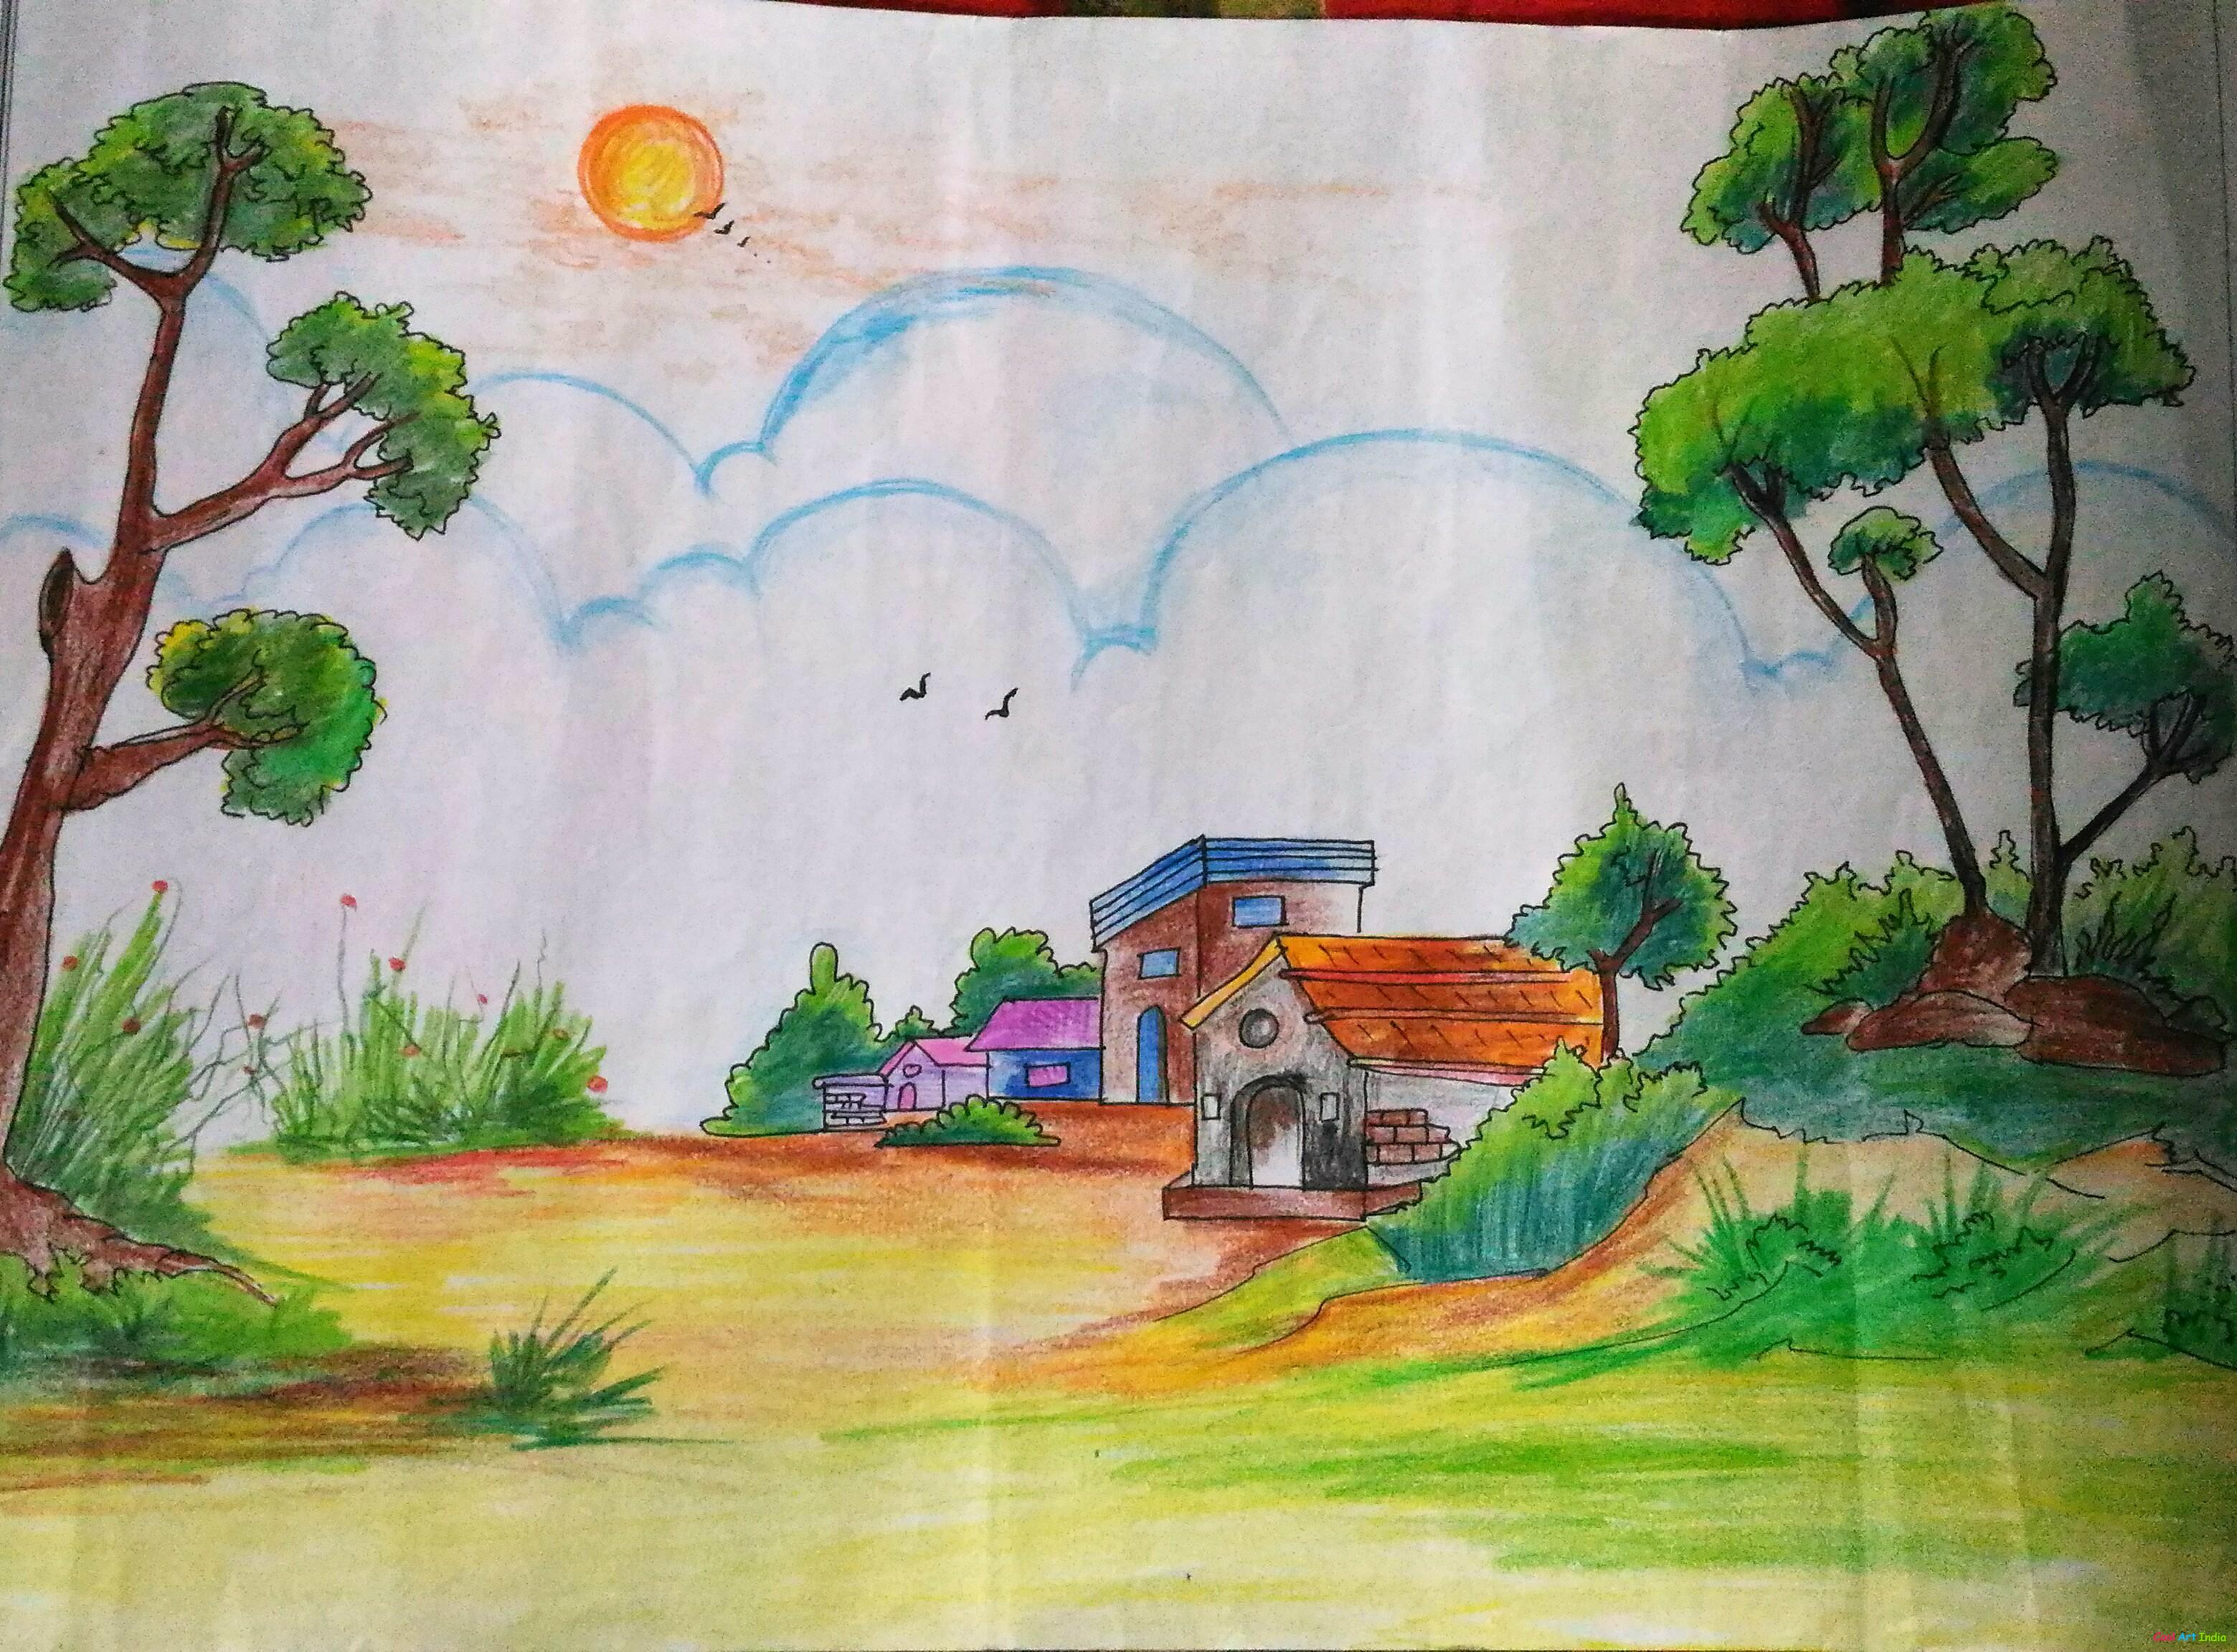 art natural scenery by ariba cool art india